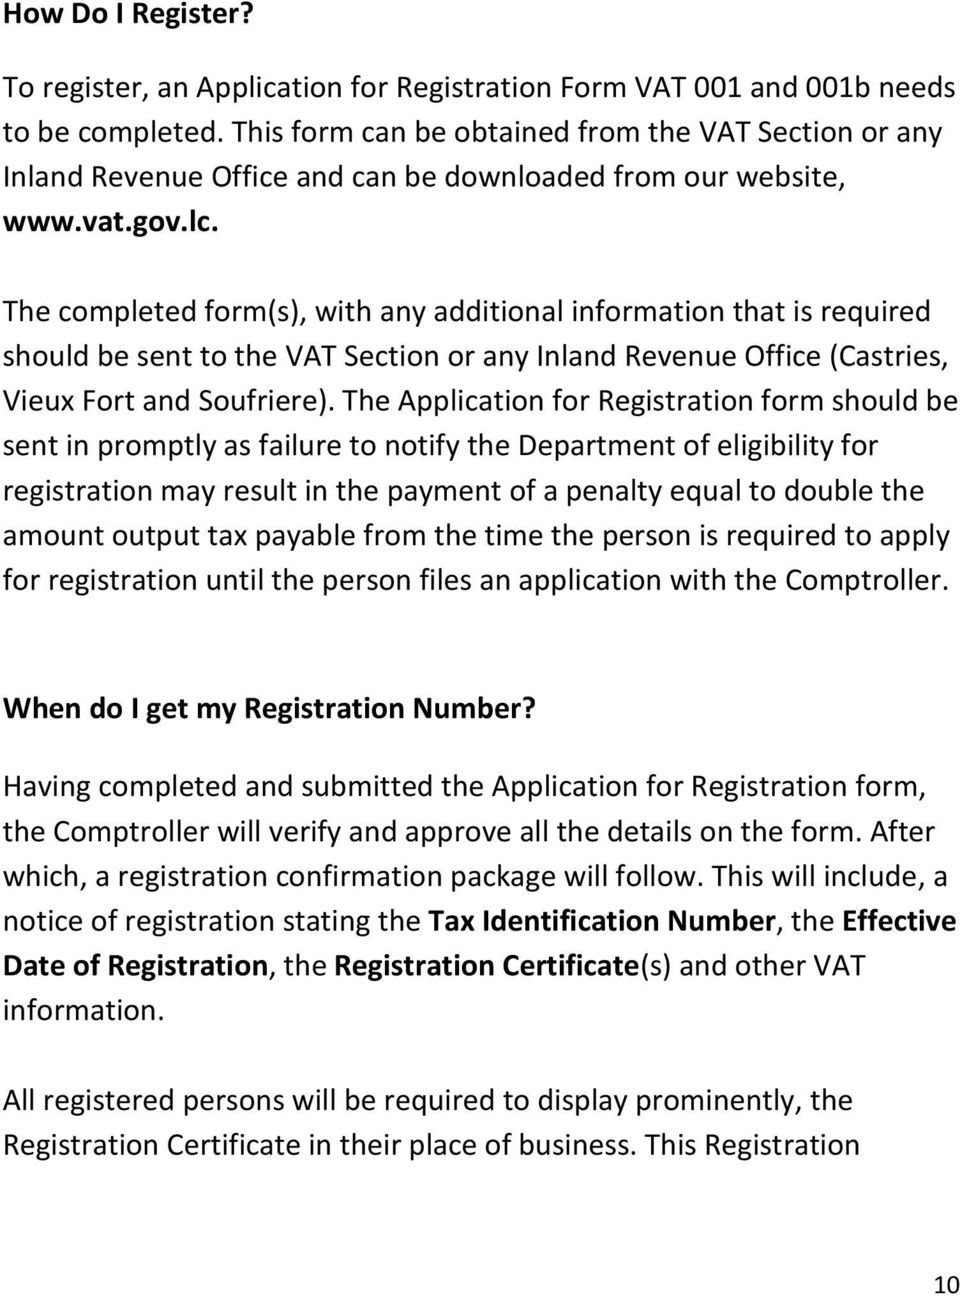 The completed form(s), with any additional information that is required should be sent to the VAT Section or any Inland Revenue Office (Castries, Vieux Fort and Soufriere).